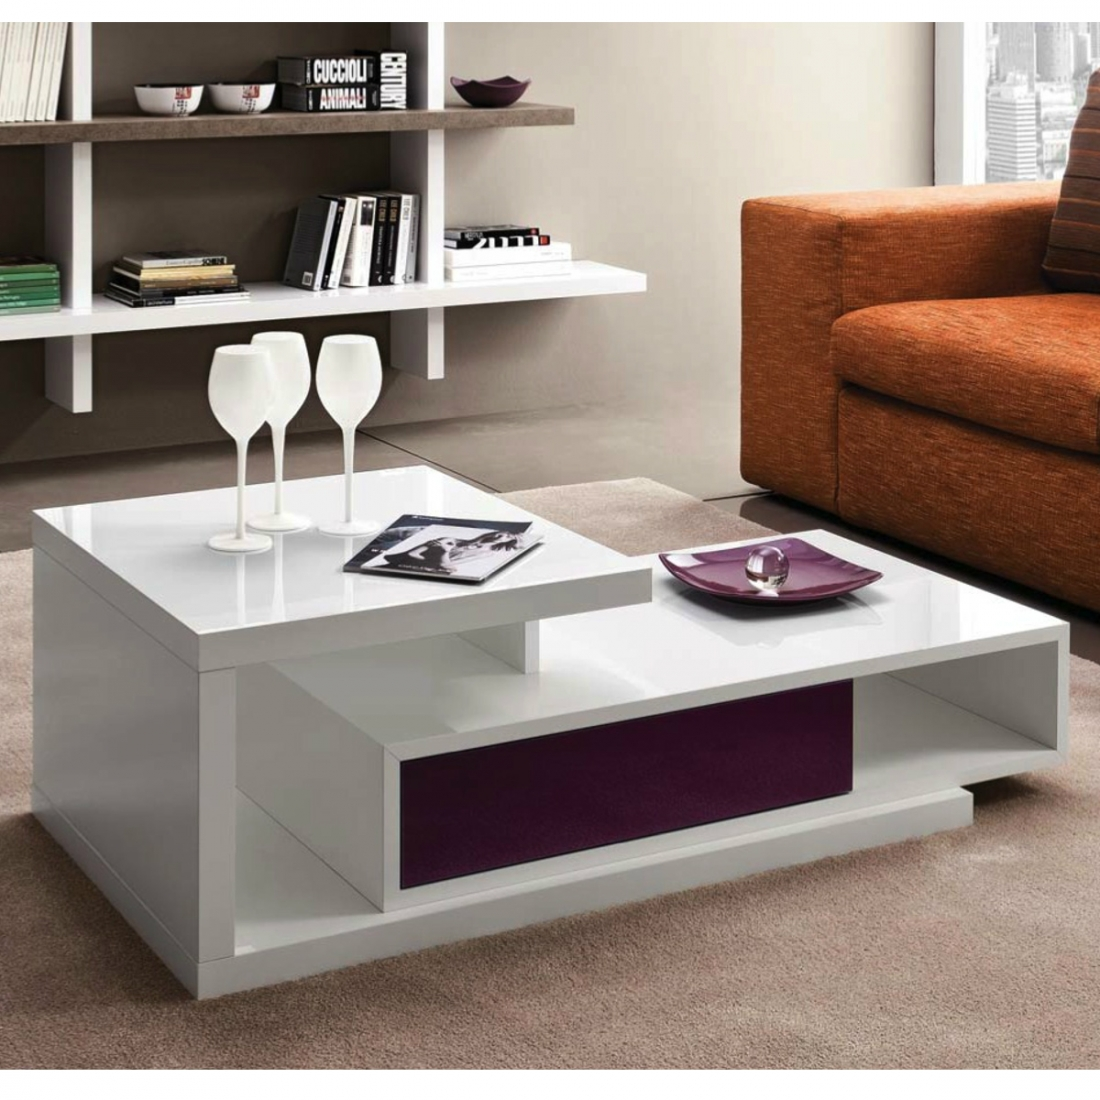 Table basse design mary - Table basse luxe design ...